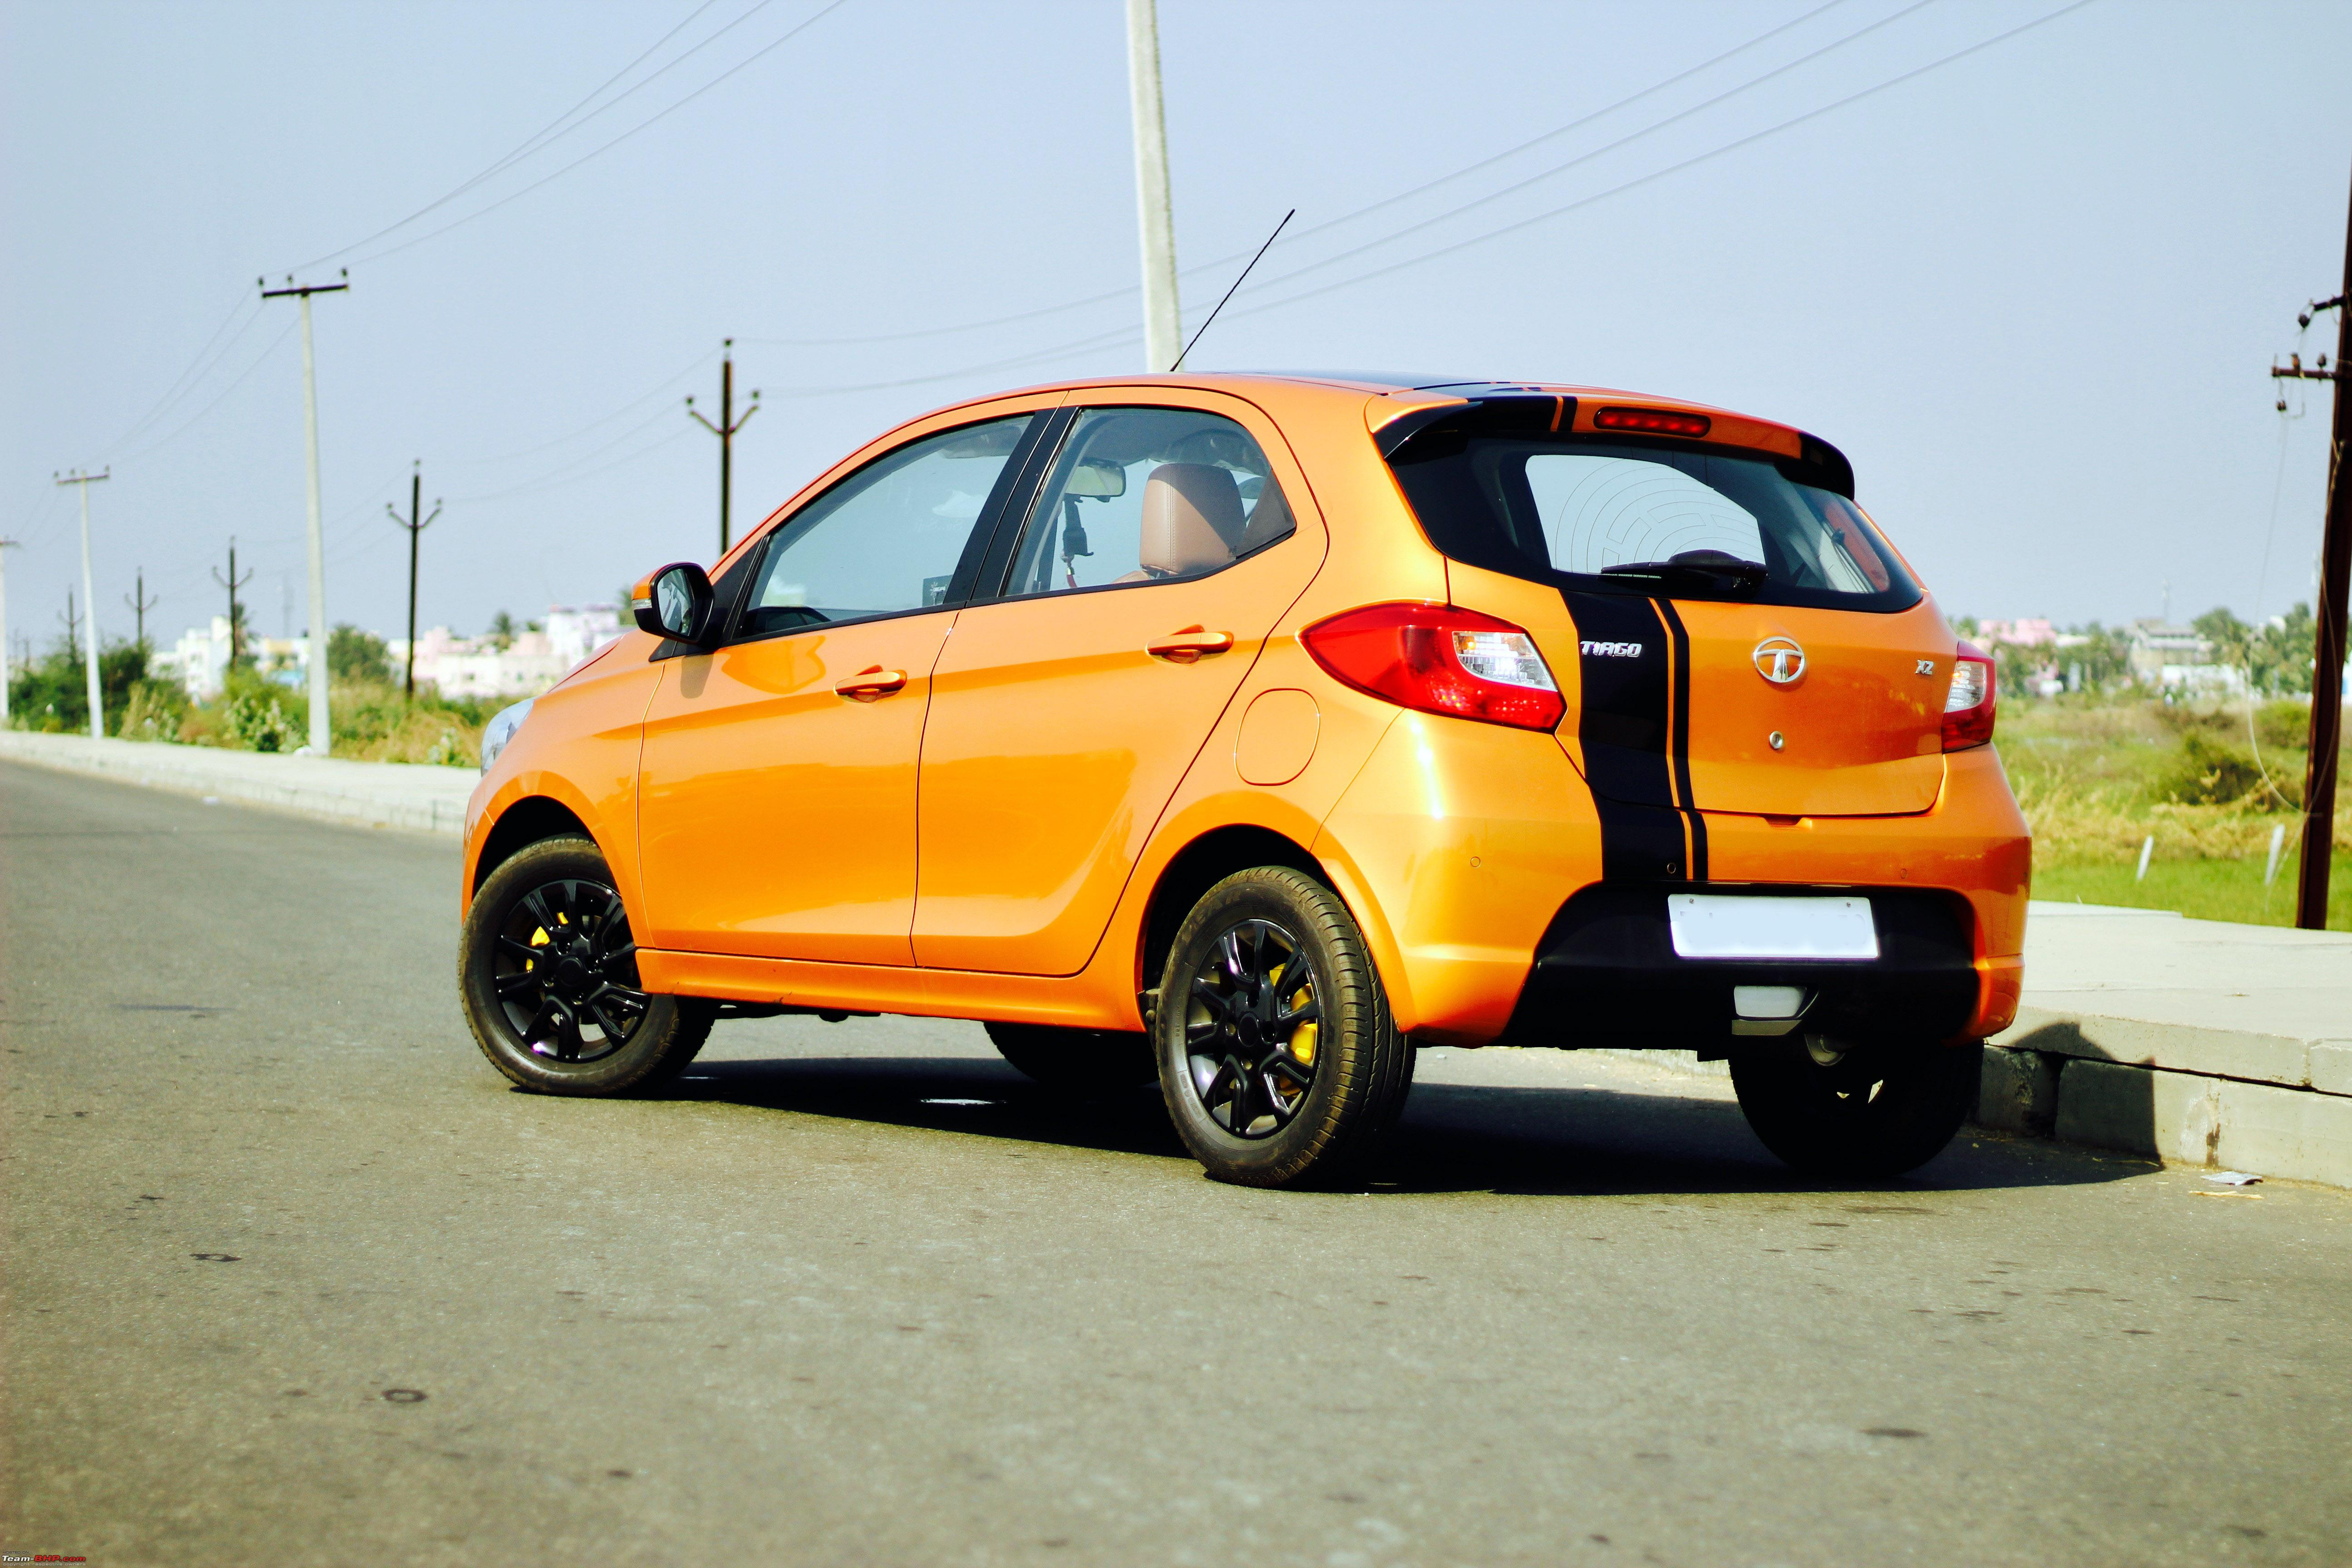 PICS : Tastefully Modified Cars in India - Page 250 - Team-BHP